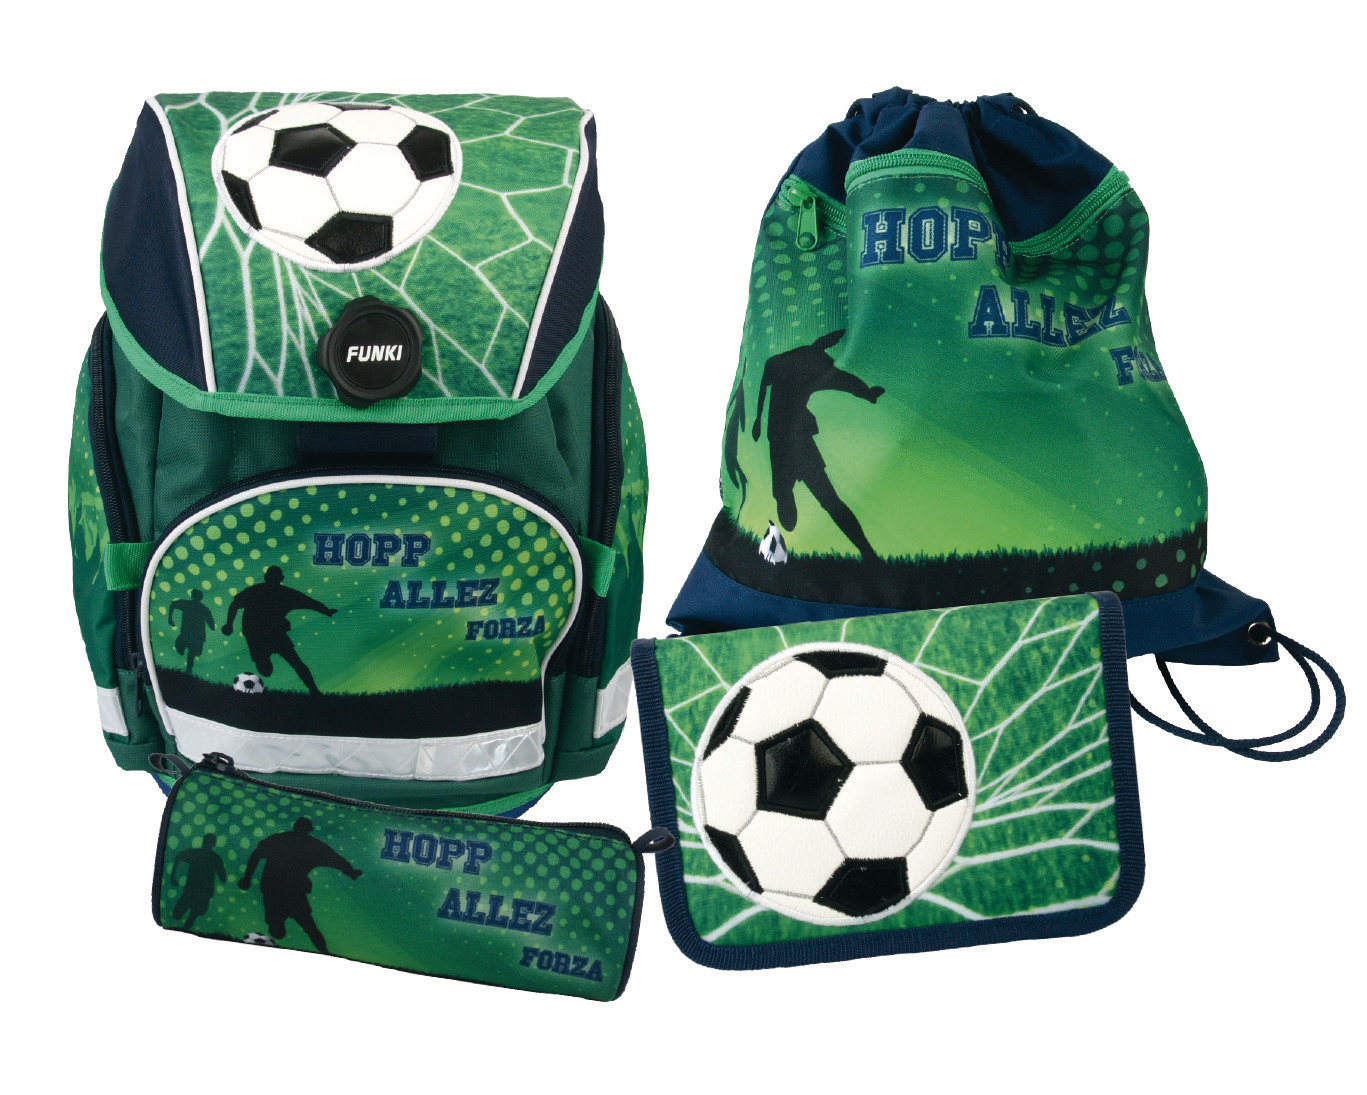 FUNKI Joy-Bag Set, 4 pcs. 6011.509 Soccer